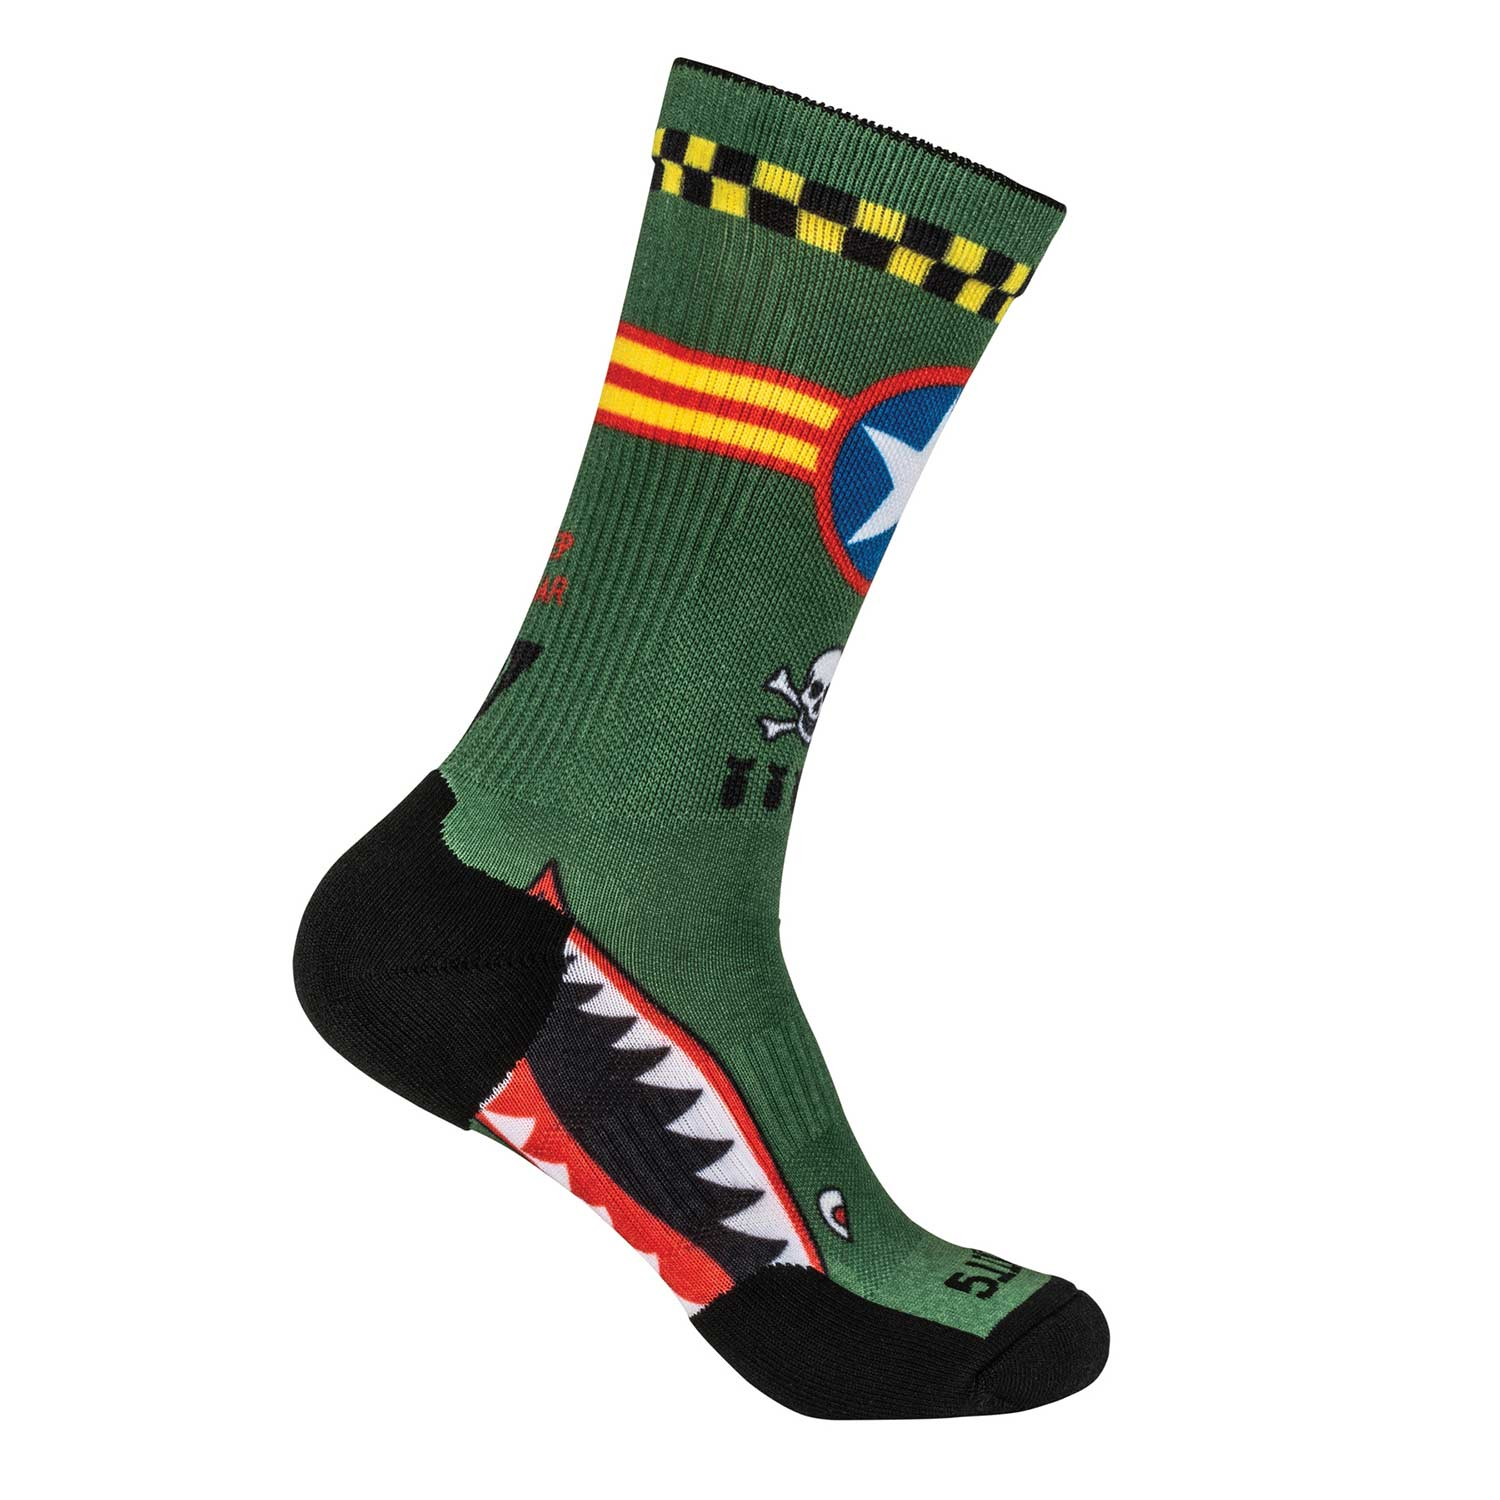 5.11 Sock and Awe Air Raid Crew Sock